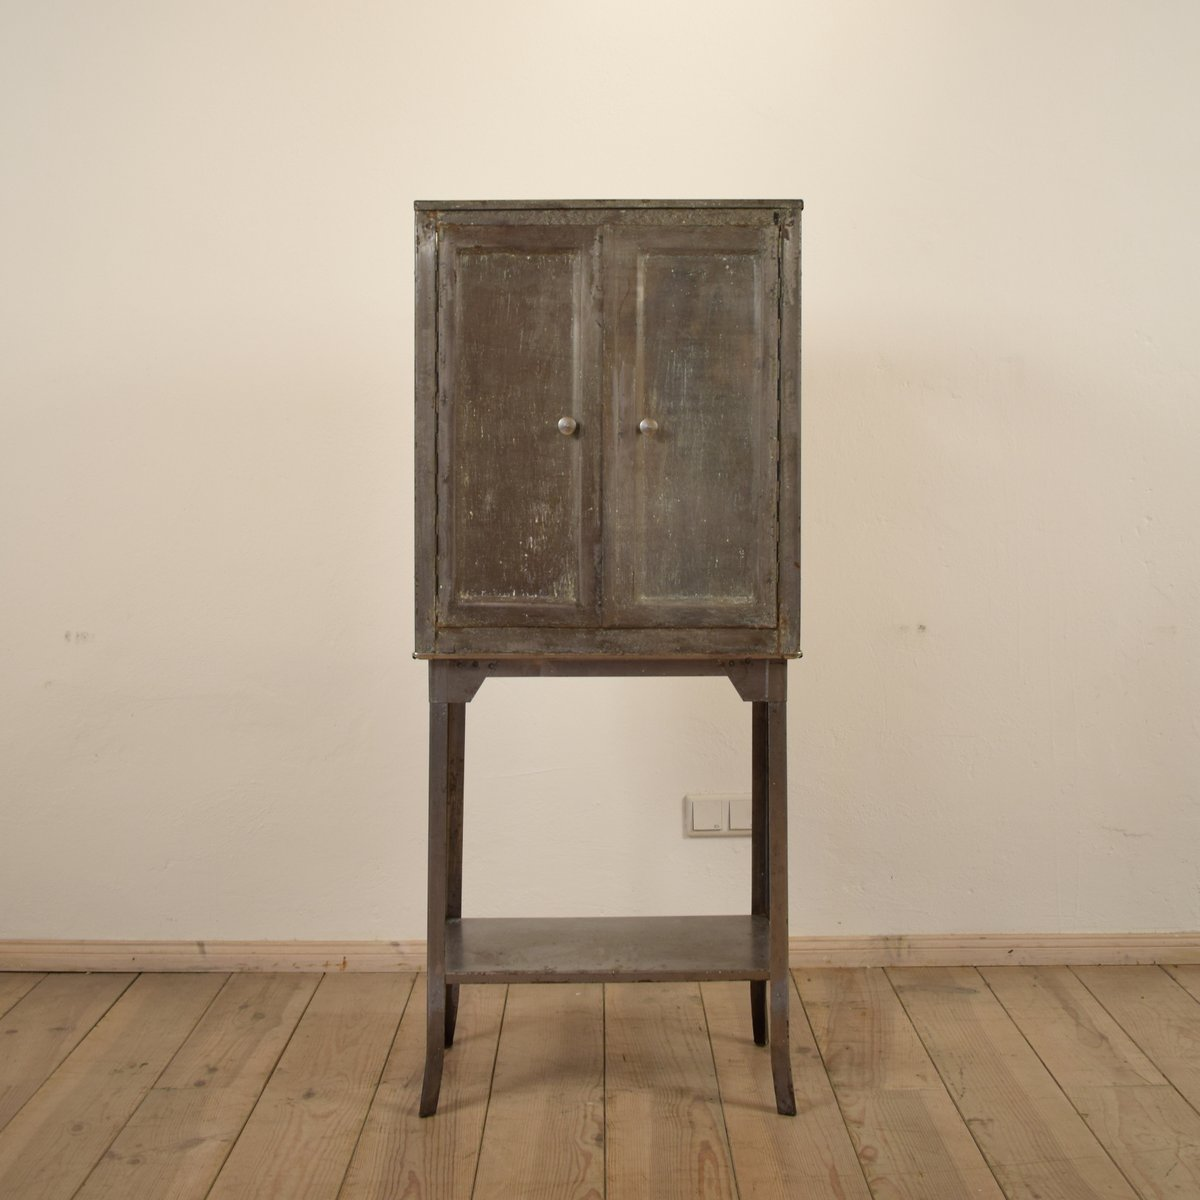 Small German Industrial Metal Cabinet, 1920s - Small German Industrial Metal Cabinet, 1920s For Sale At Pamono